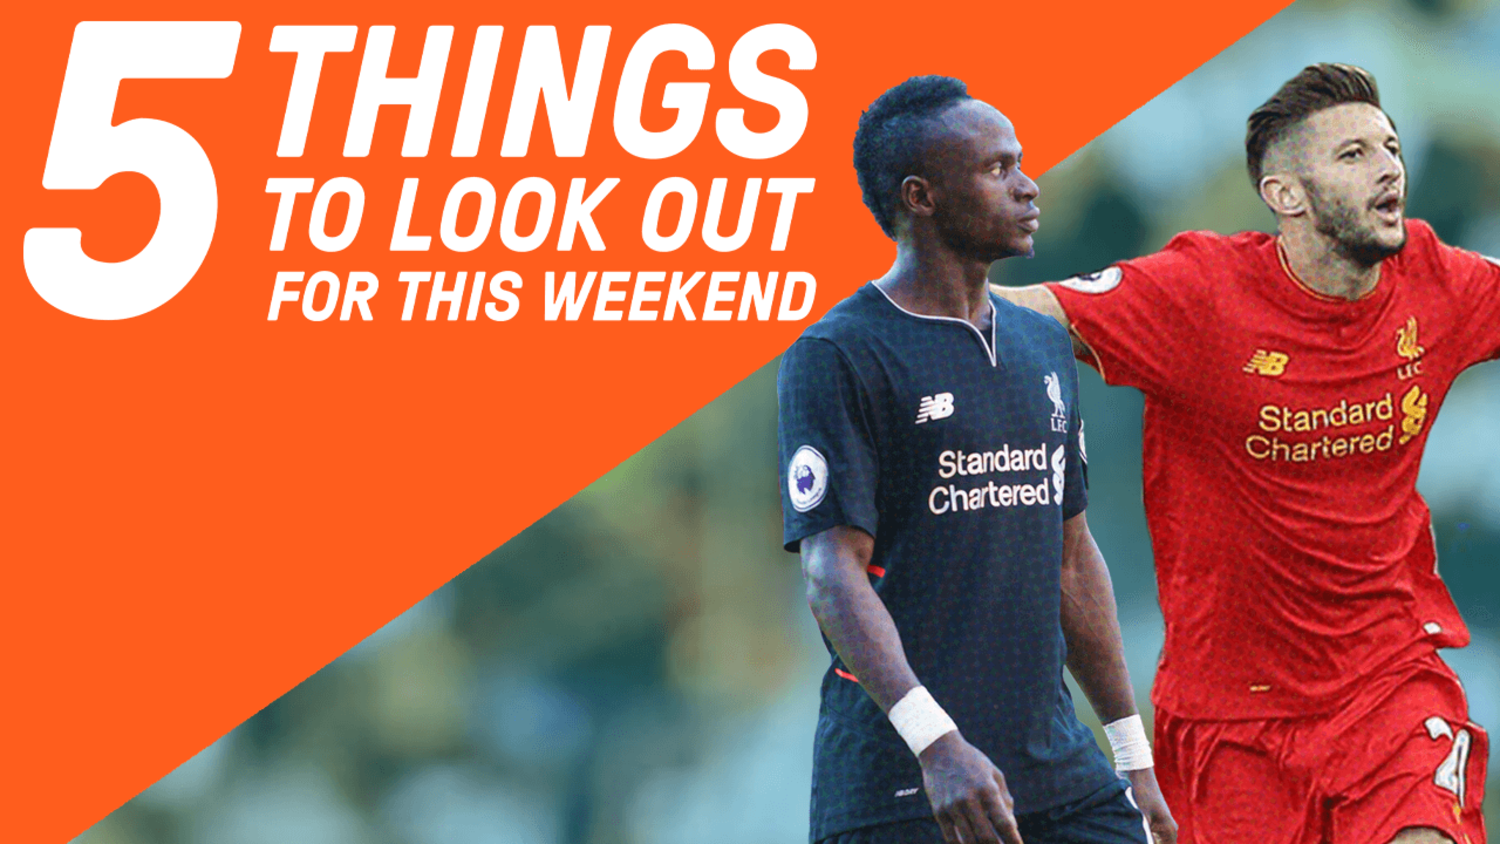 Lallana And Mane Set To Destroy Chelsea | 5 Things To Look Out For This Weekend